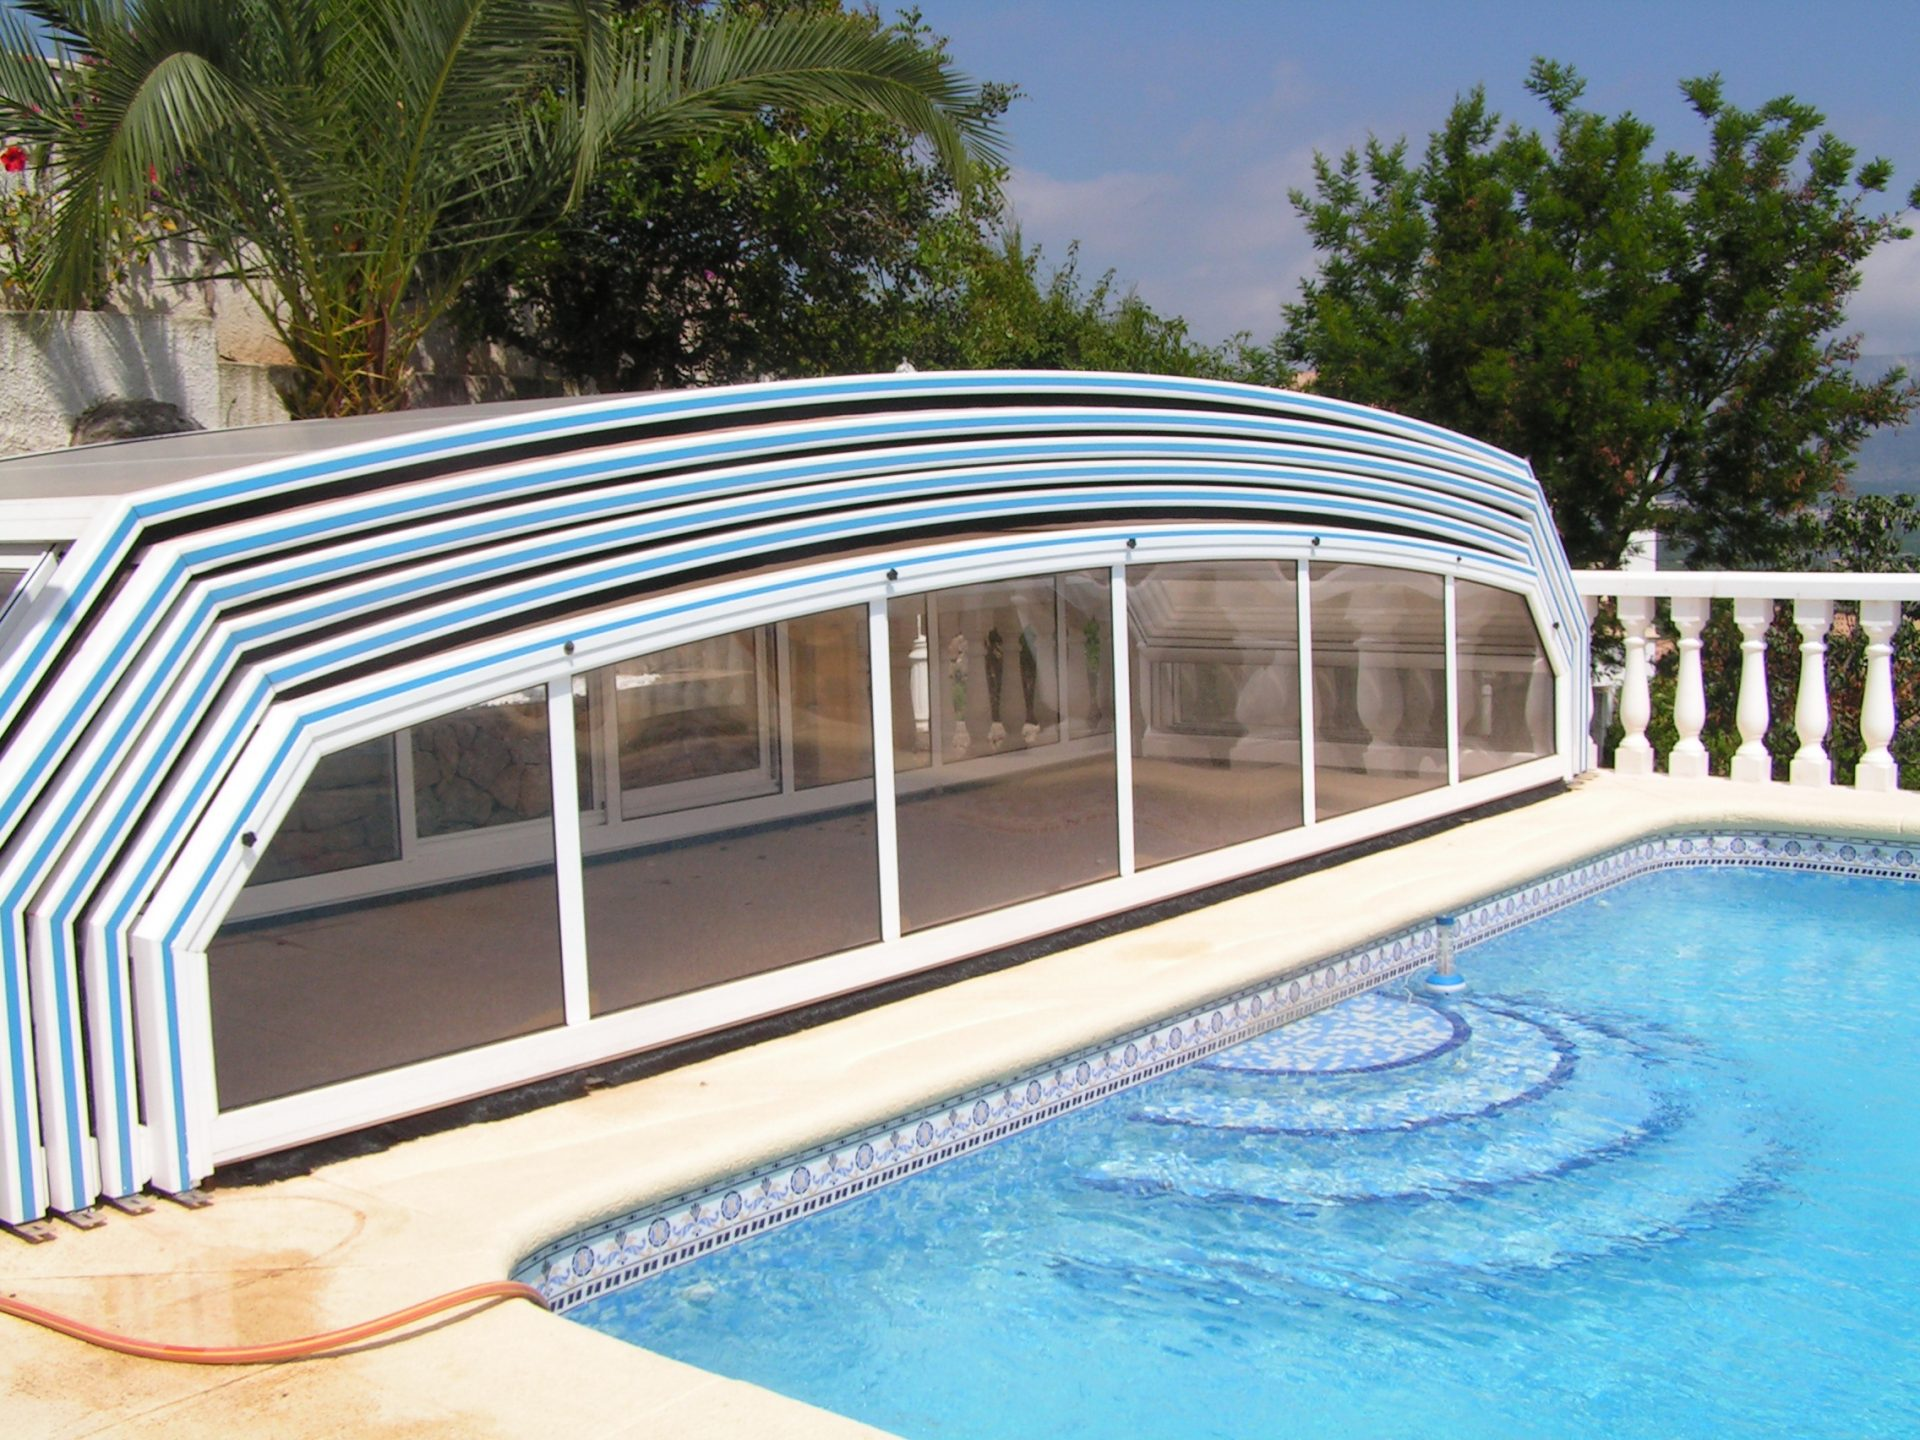 Abri piscine paris t lescopique sur roulette for Abri de piscine et impot